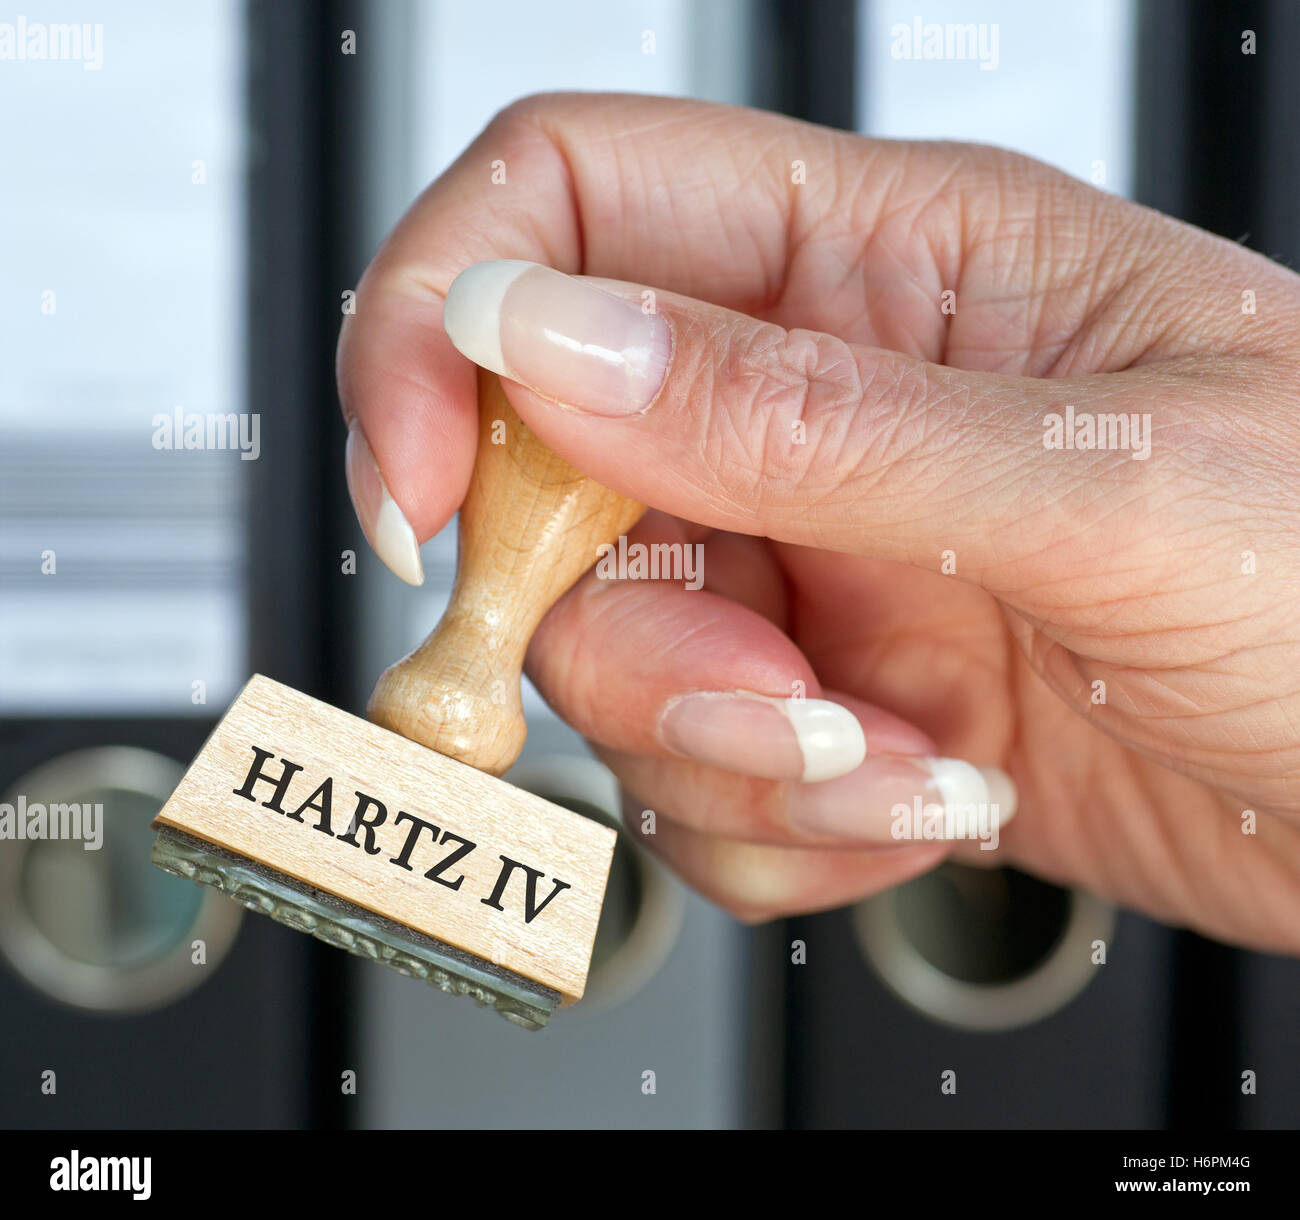 hartz iv - stamp labour office with hand - Stock Image